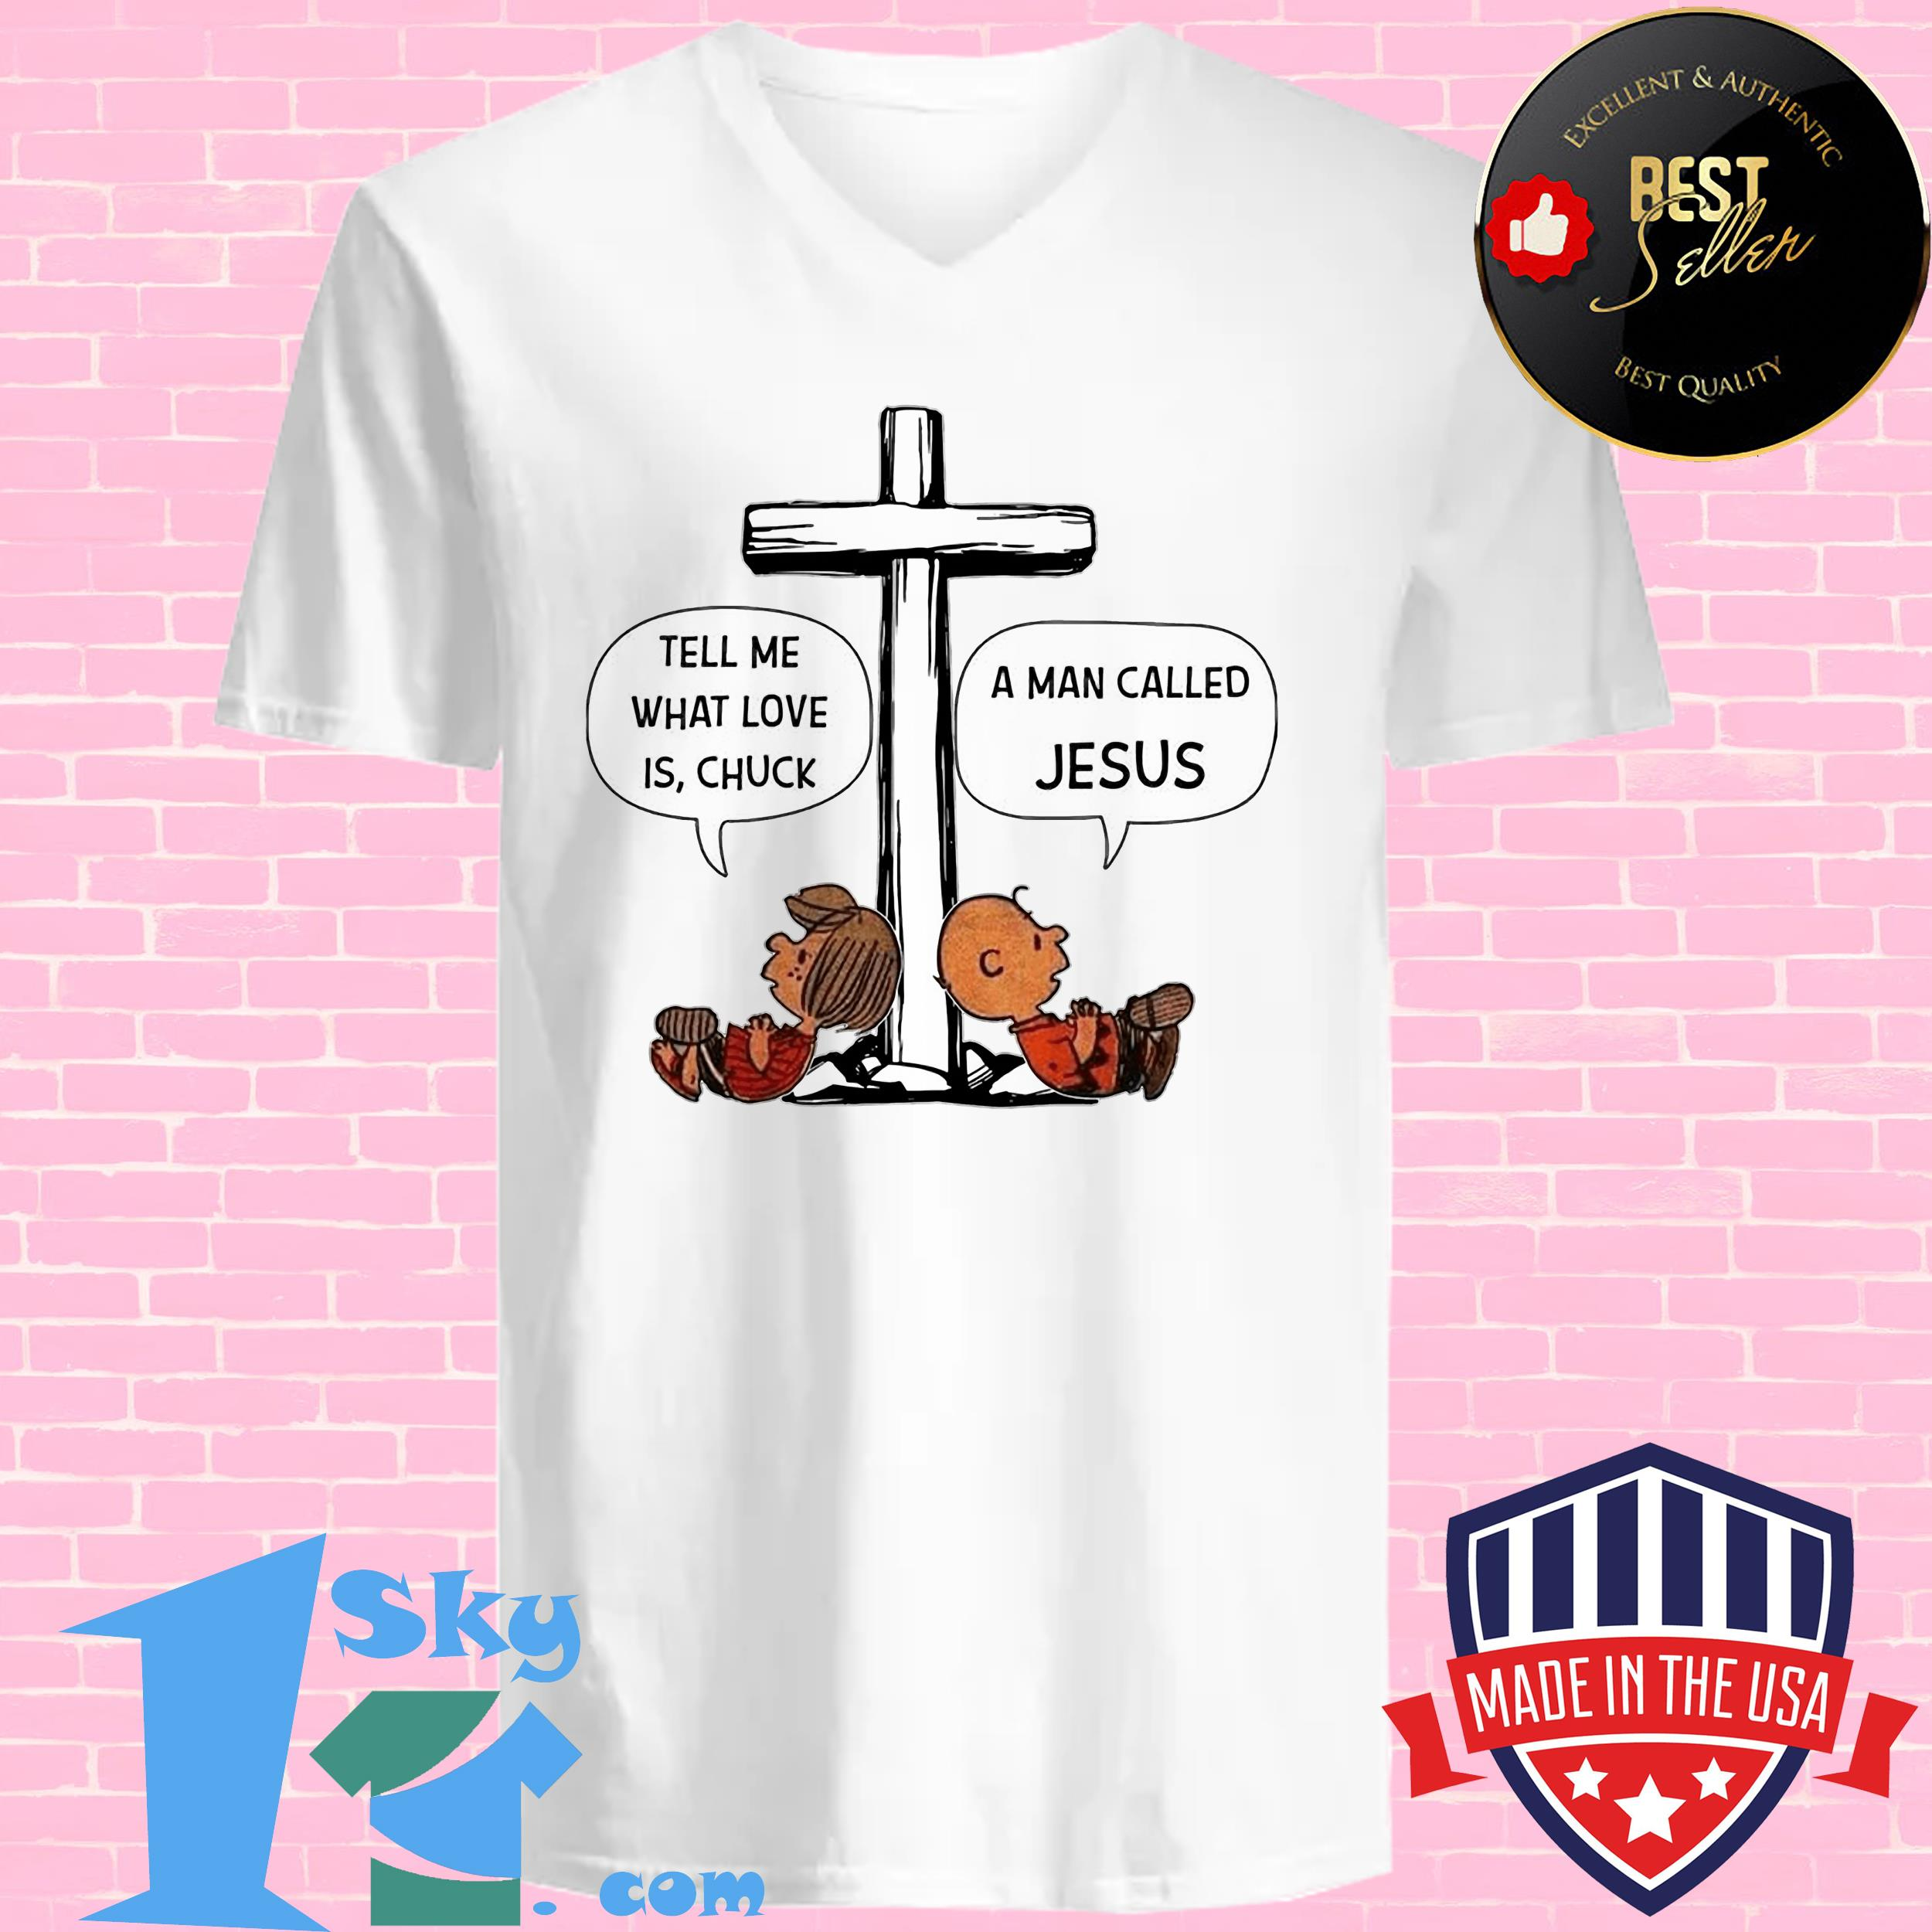 charlie brown tell me what love is chuck a man called jesus v neck - Charlie Brown Tell me what love is chuck a man called Jesus shirt